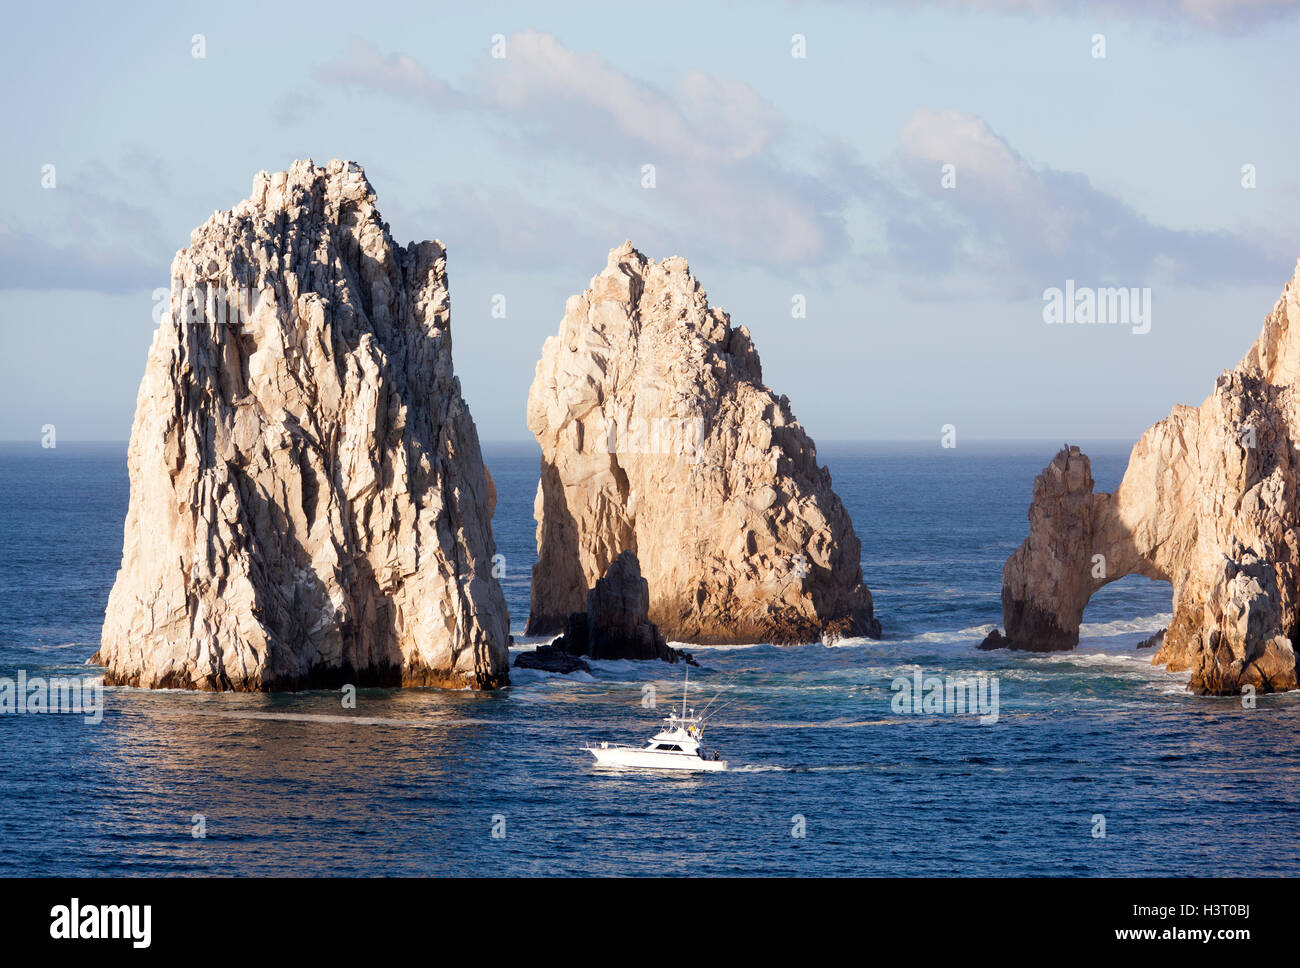 The boat passing by famous rocks of Cabo San Lucas resort town (Mexico). - Stock Image